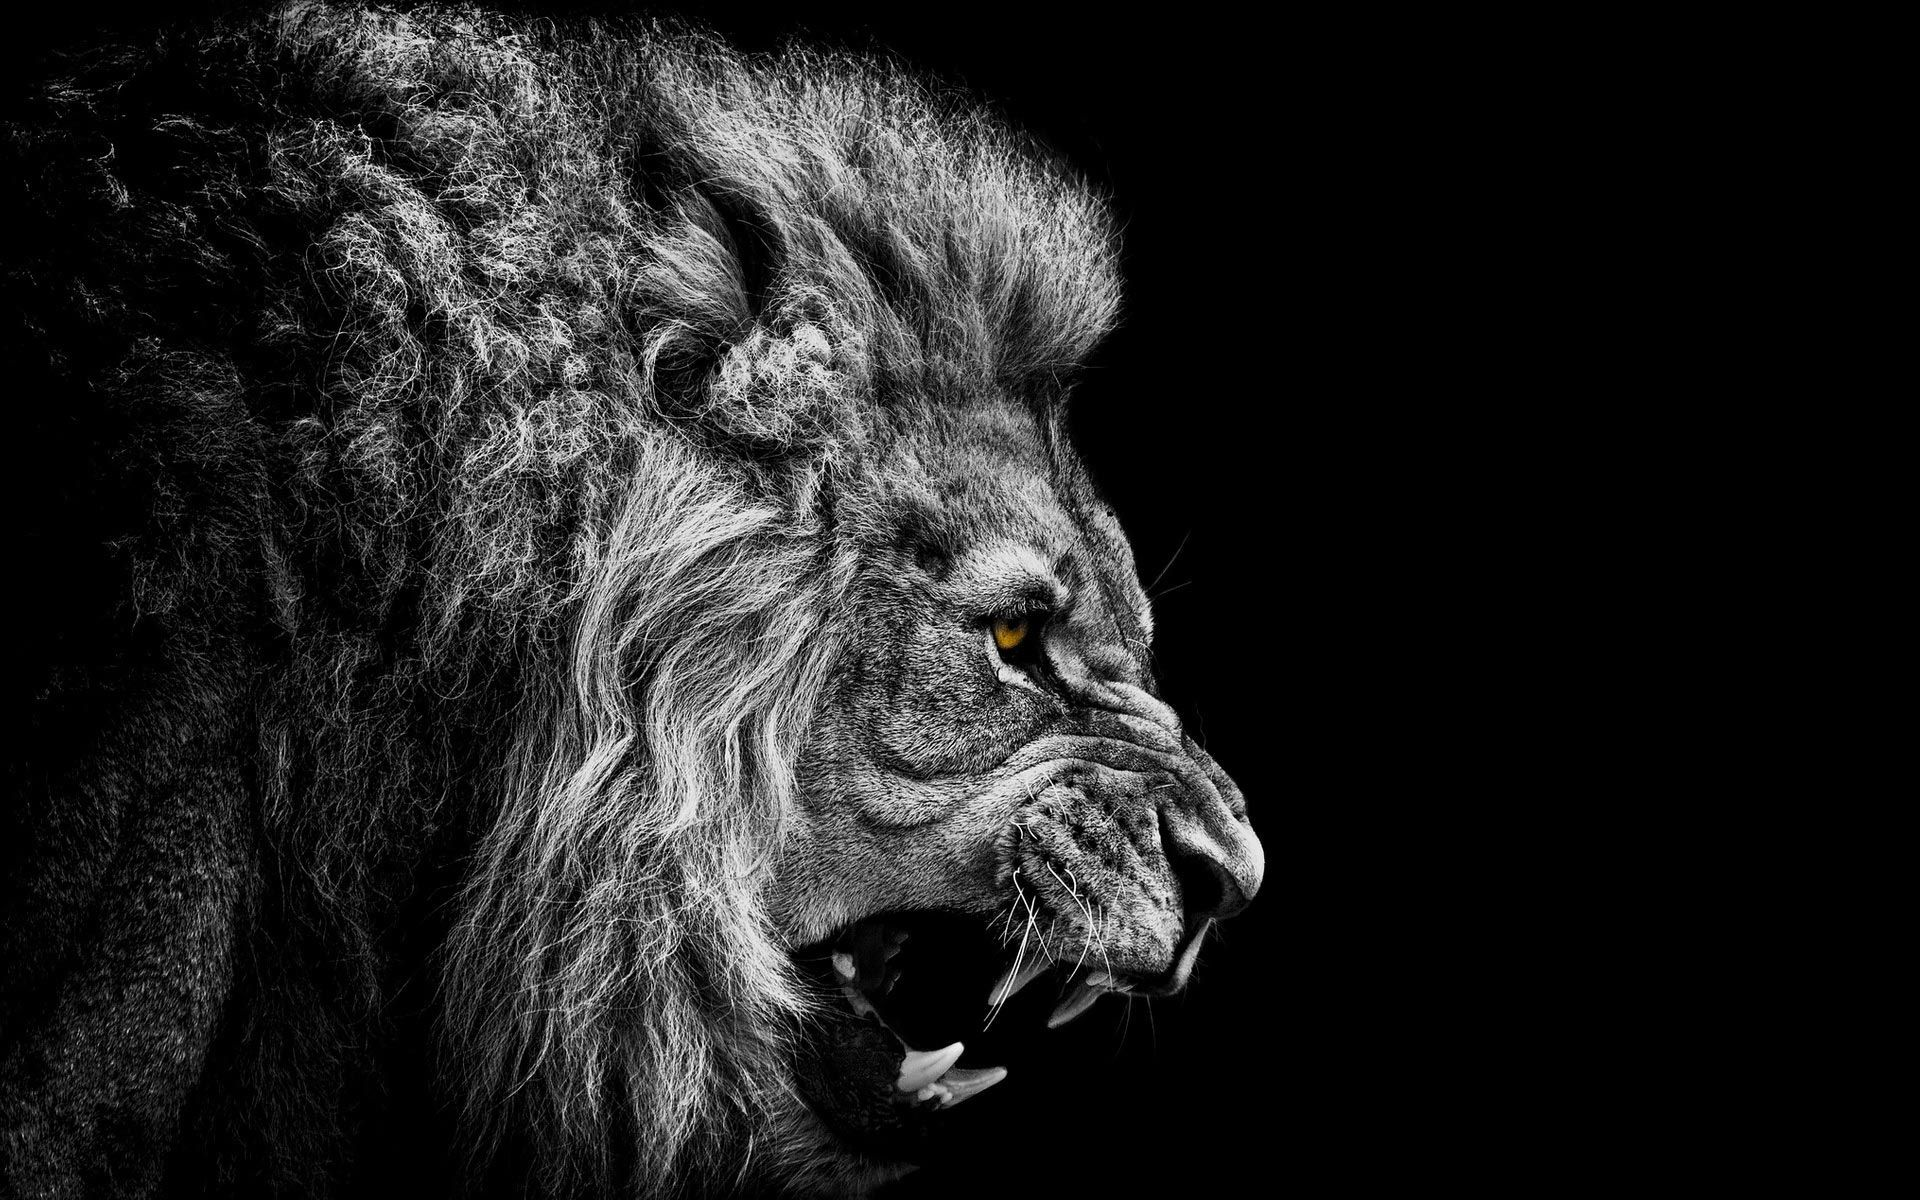 Angry Lion Wallpaper Download Lion Wallpaper Lion Hd Wallpaper Black And White Lion